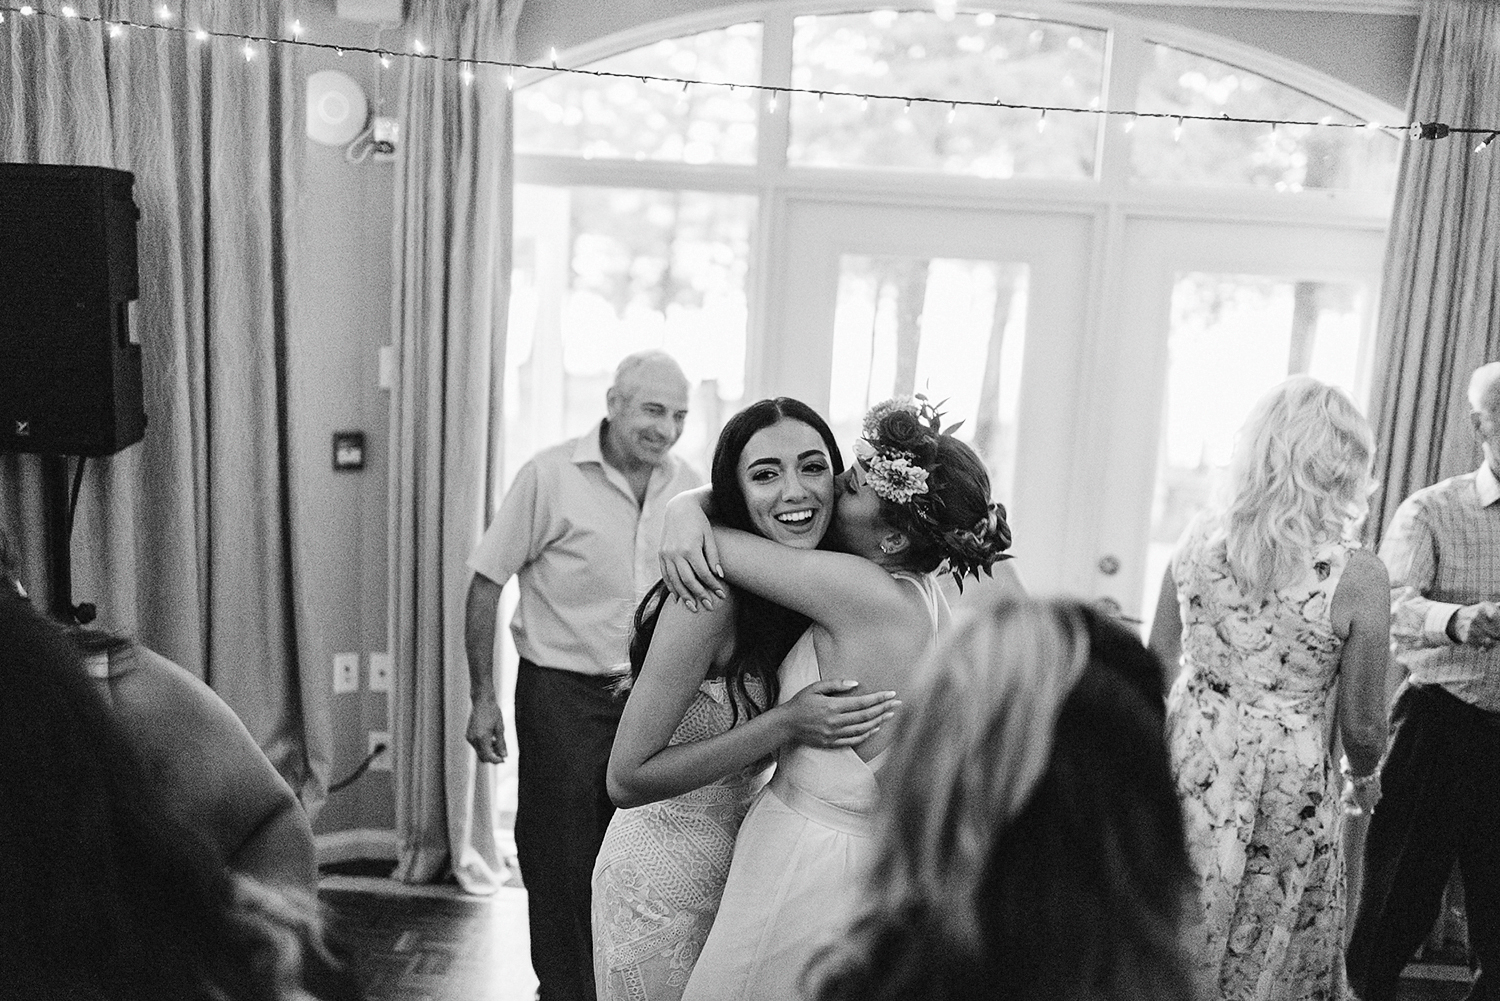 Muskoka-Cottage-Wedding-Photography-Photographer_Photojournalistic-Documentary-Wedding-Photography_Vintage-Bride-Lovers-Land-Dress_Boho-Bride-Wedding-Reception-Candid-Moment-bride-and-sister-maid-of-honour.jpg